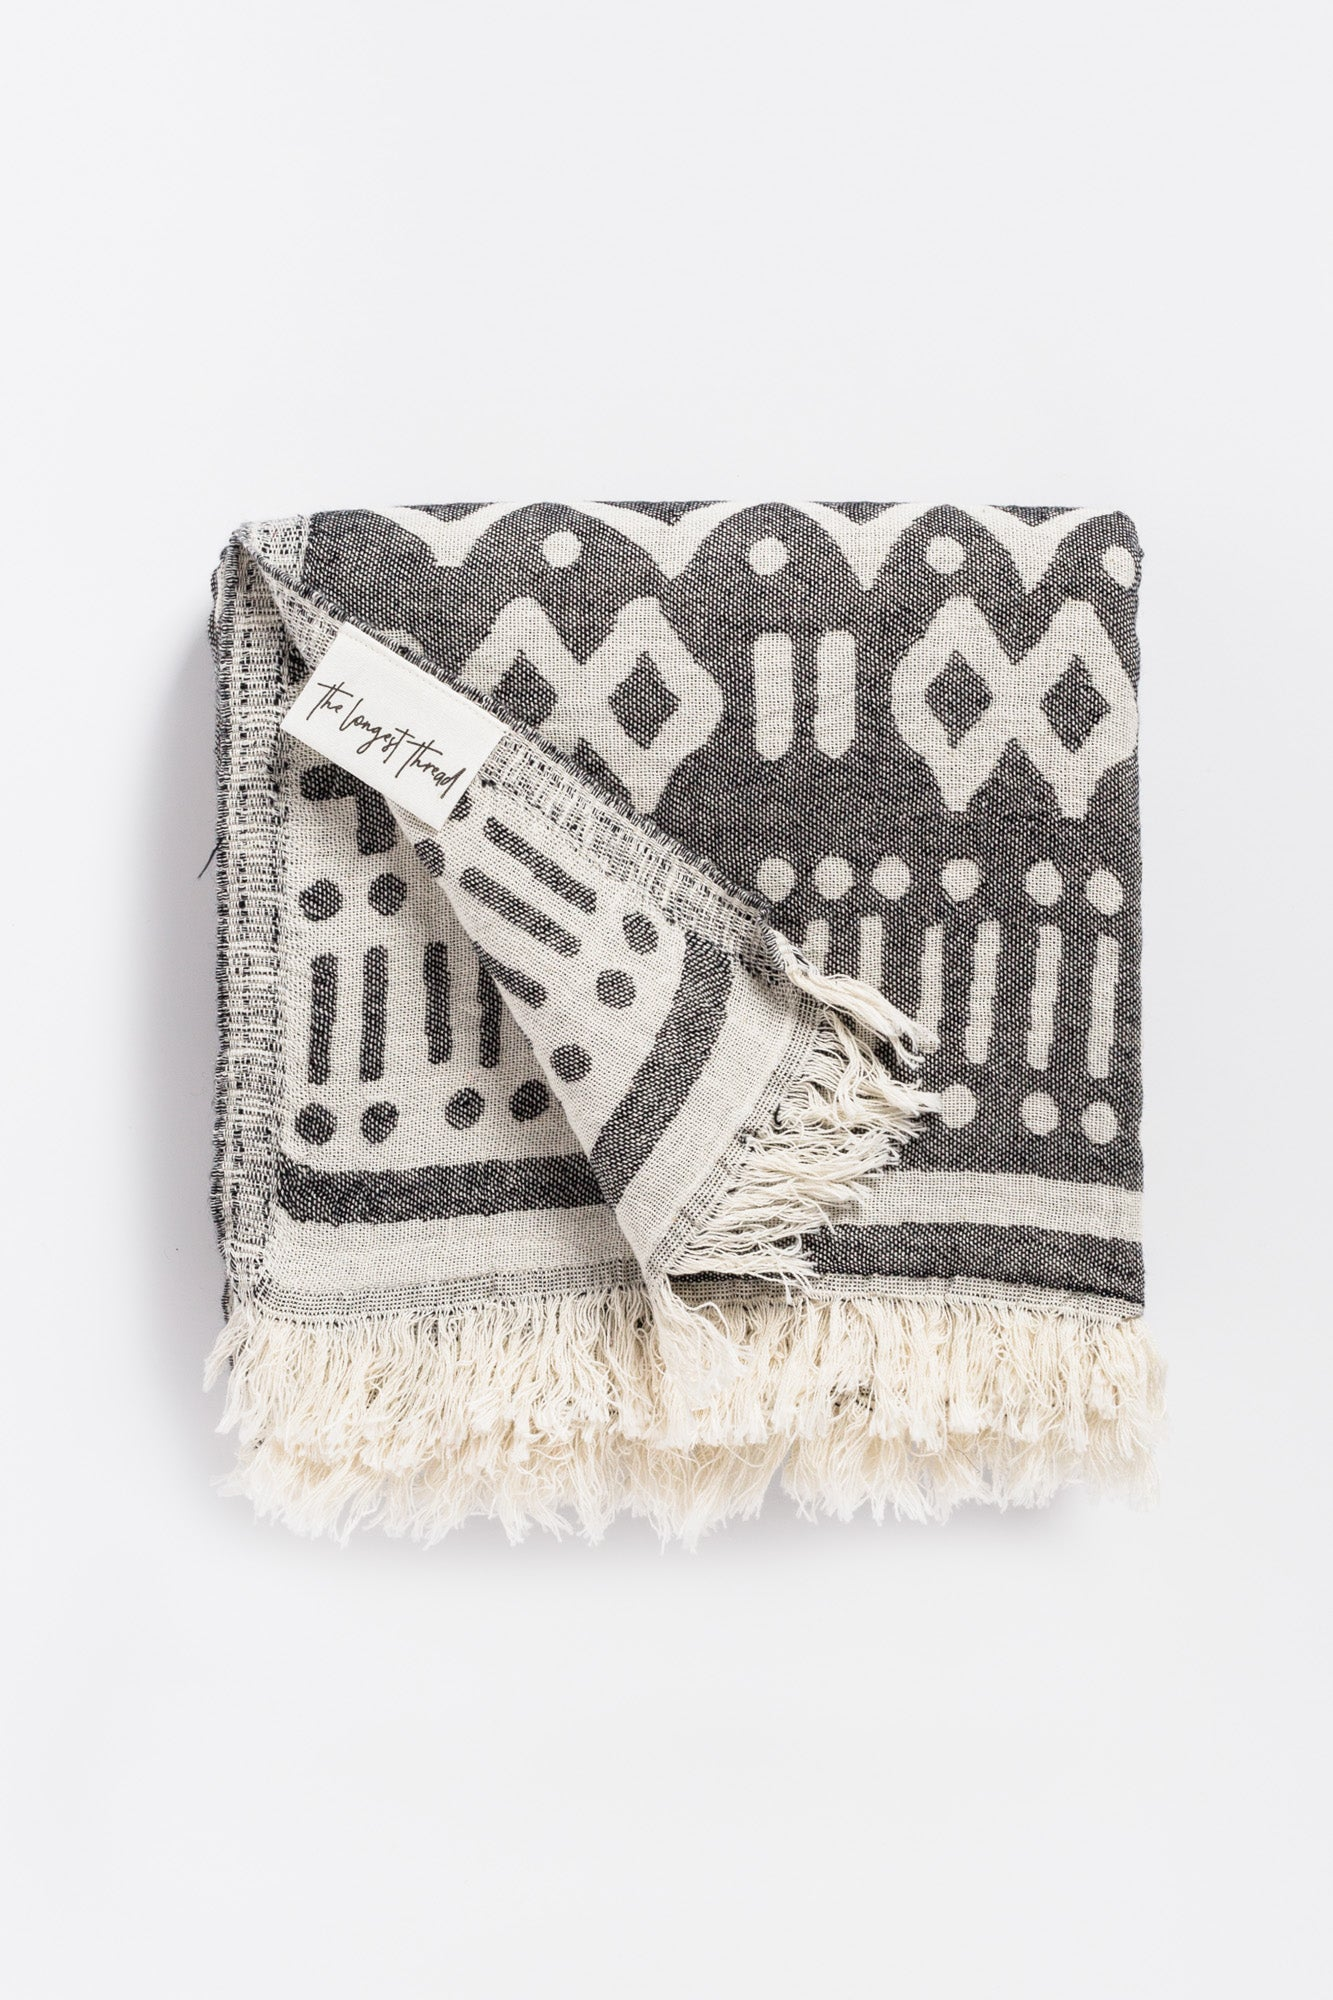 Maghreb Black Turkish Towel